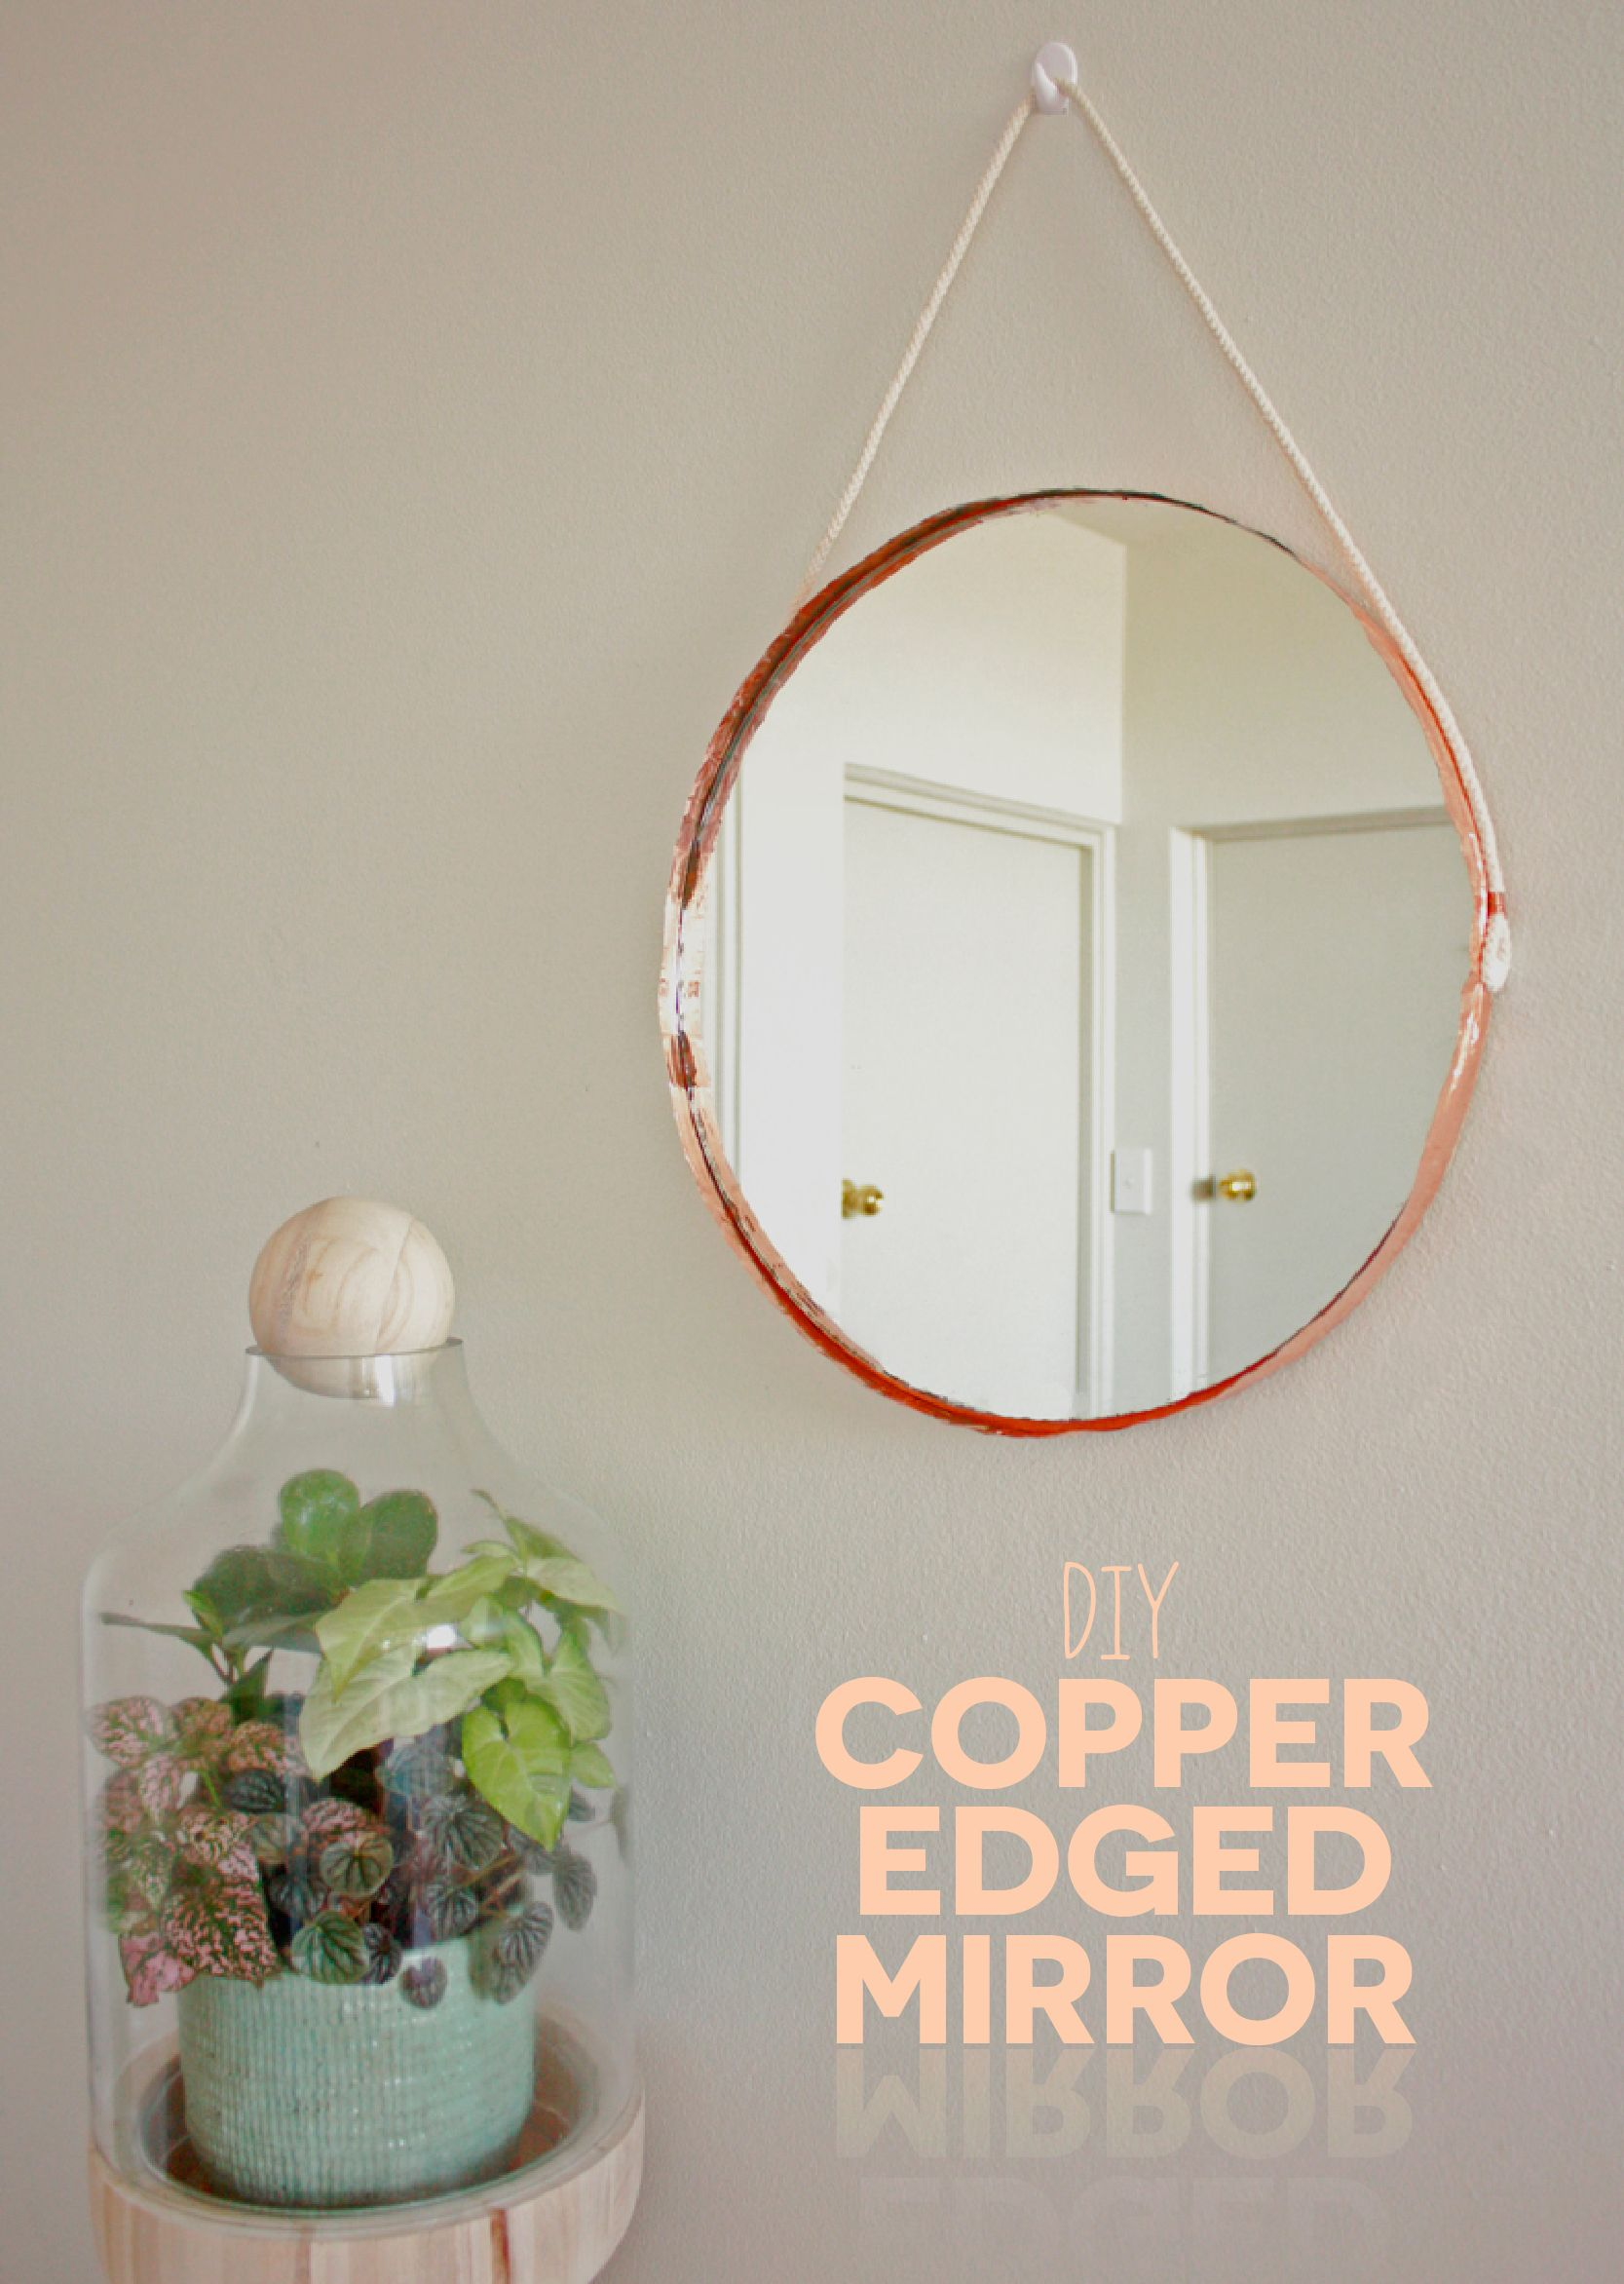 This diy copper edge mirror is easier than you think and uses